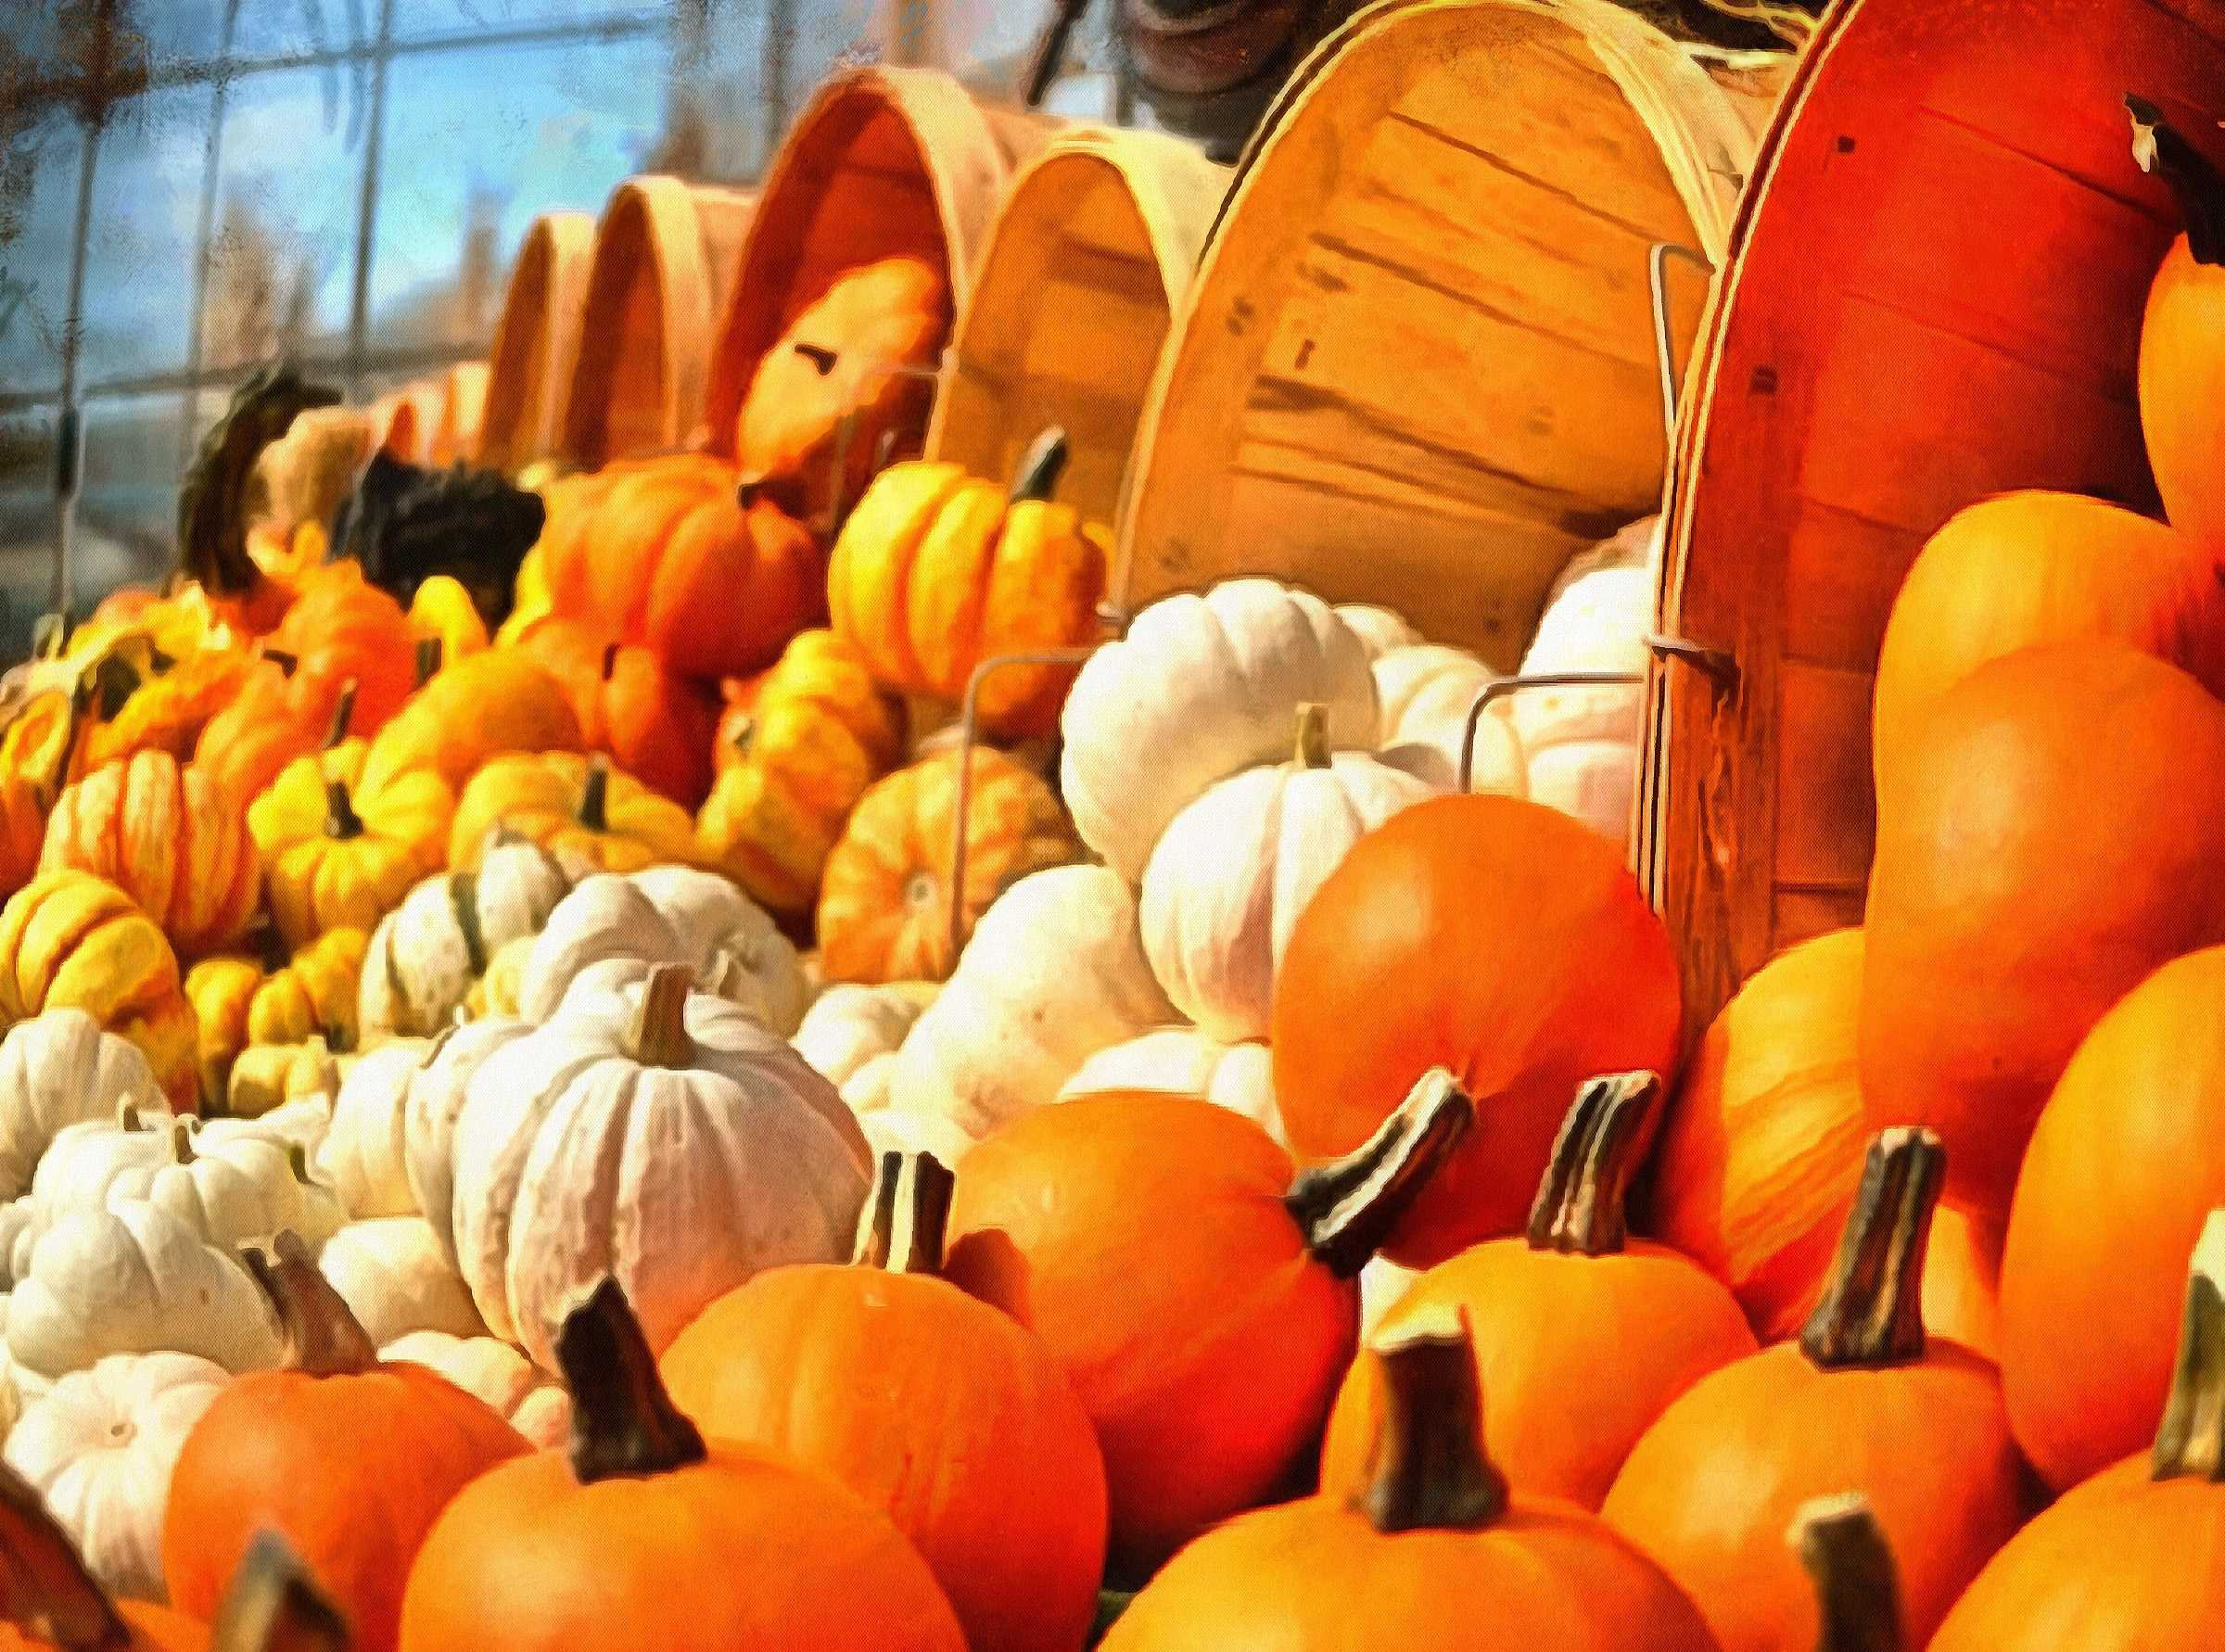 pile, lot of, pumpkins, thanksgiving, vegetables, harvest ...Thanksgiving